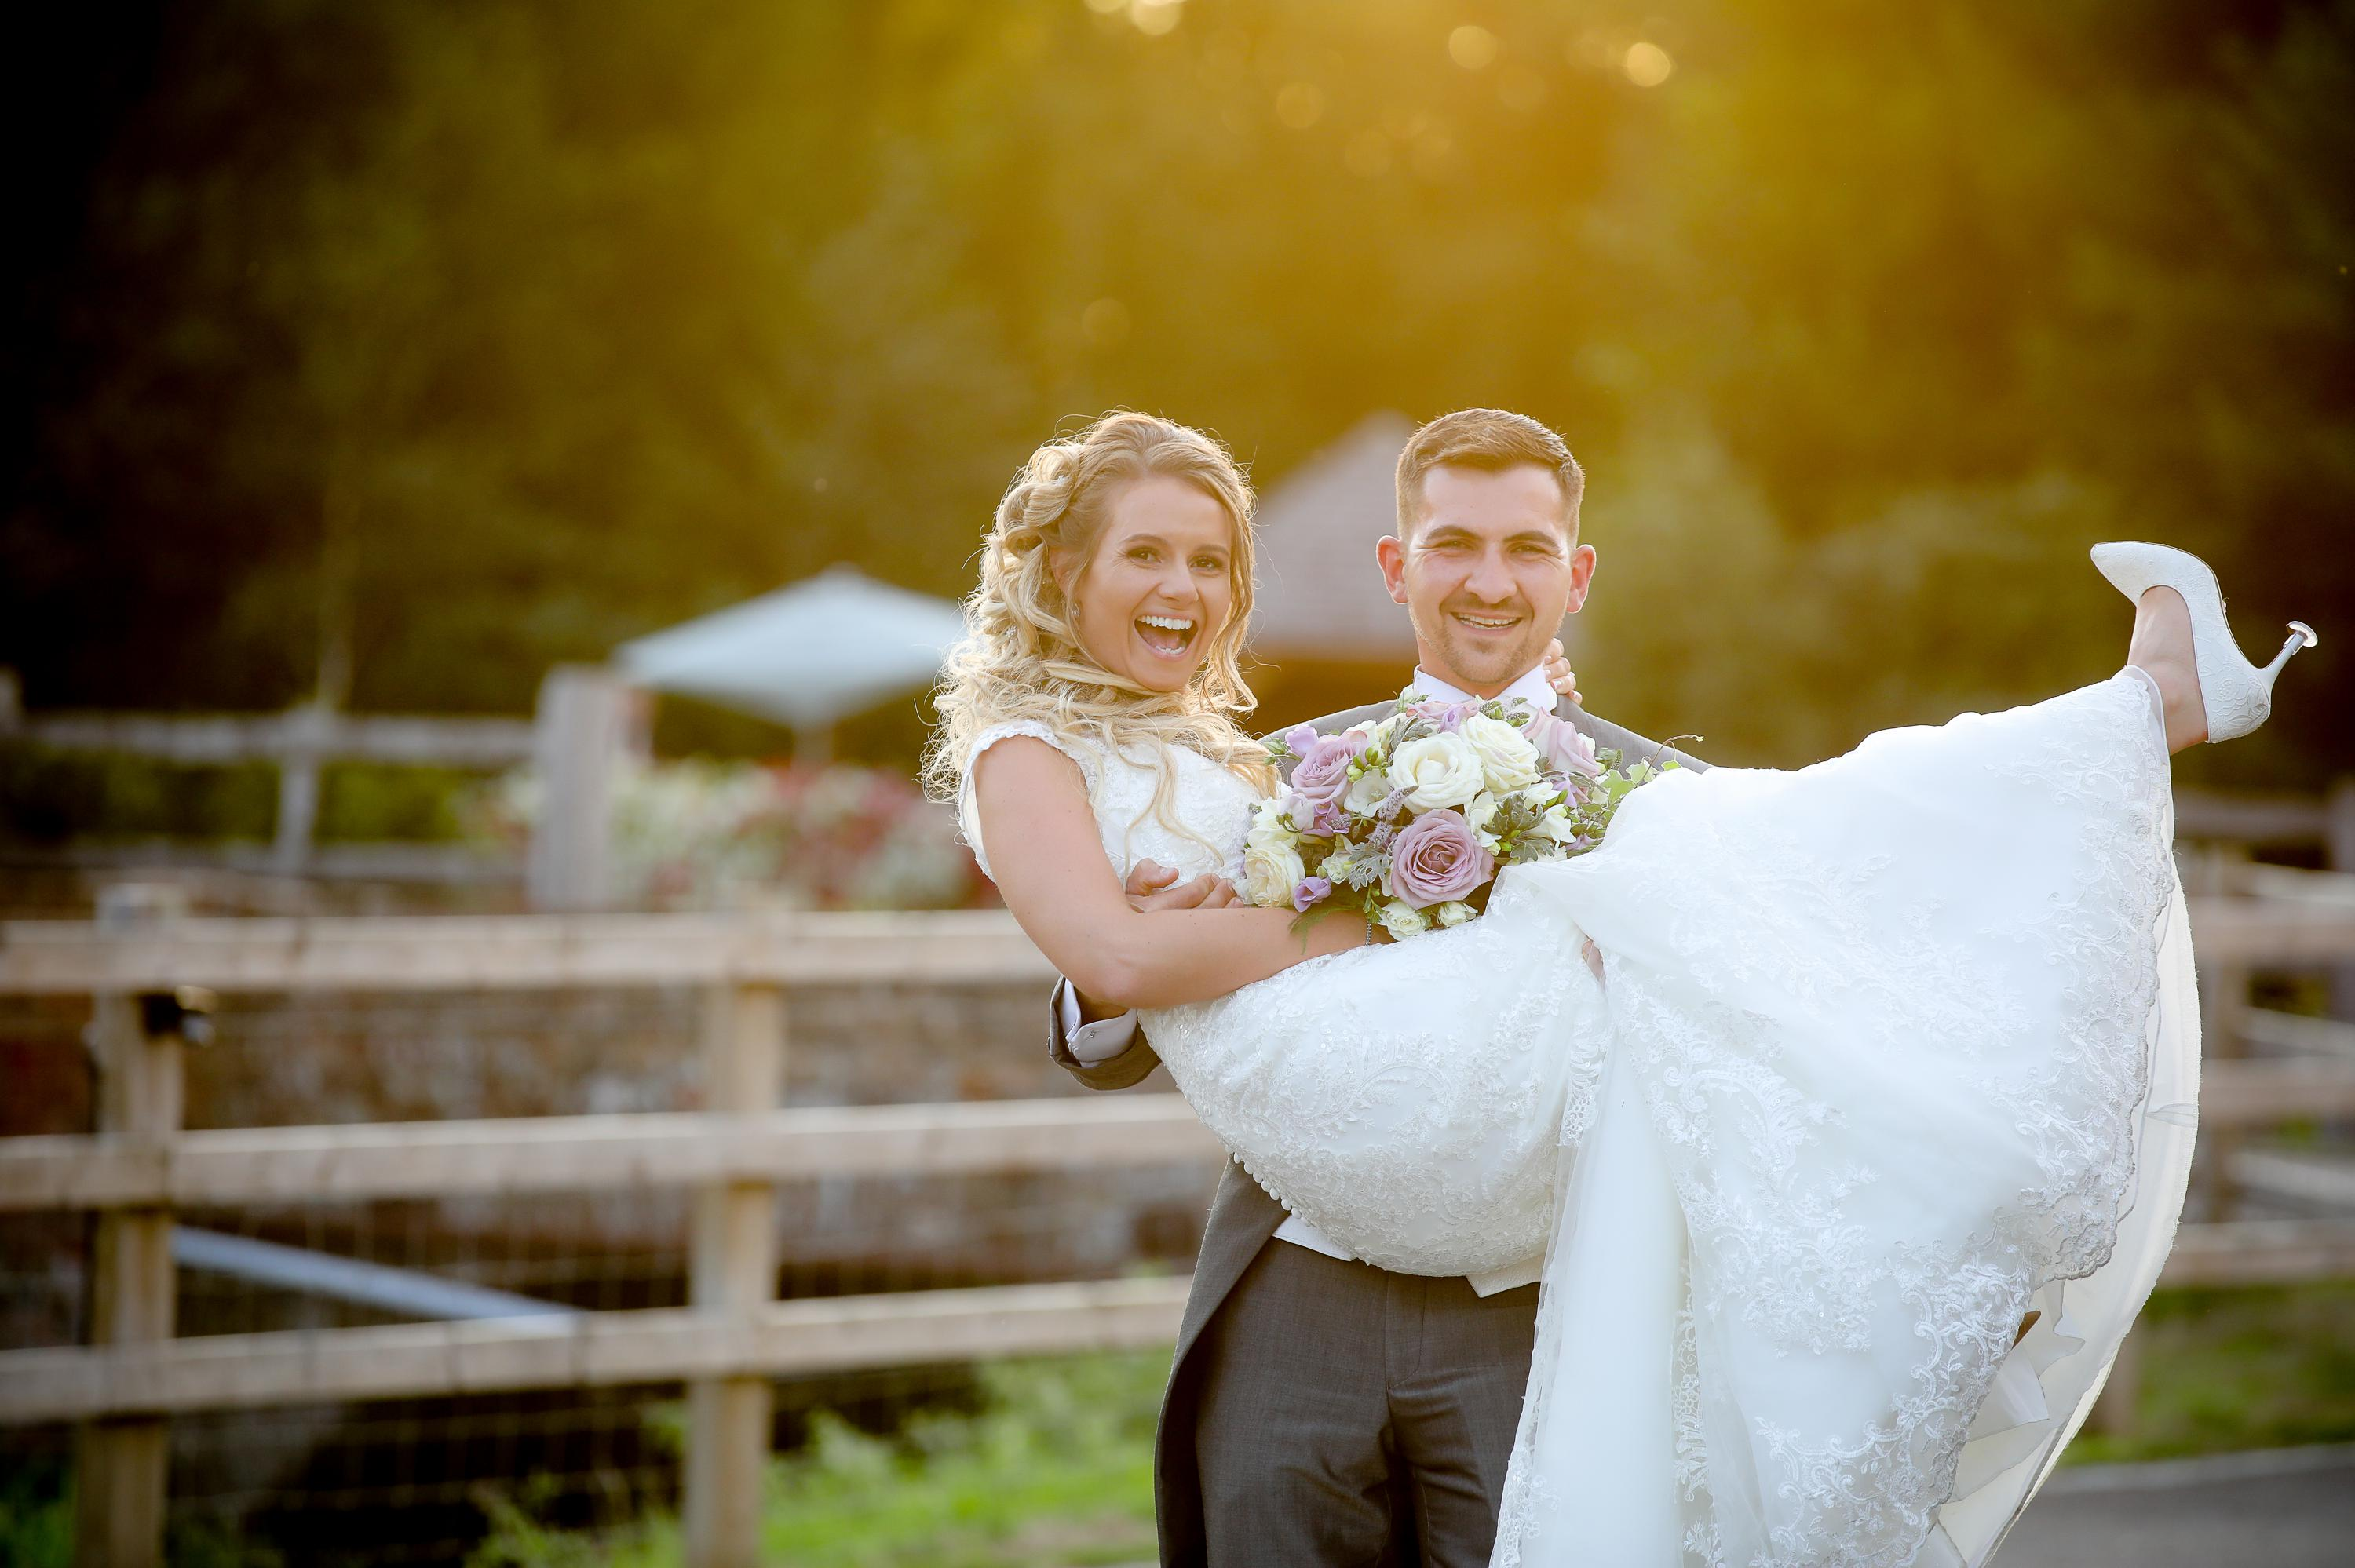 Tewin Bury Farm Wedding Day | Stephanie & Dan